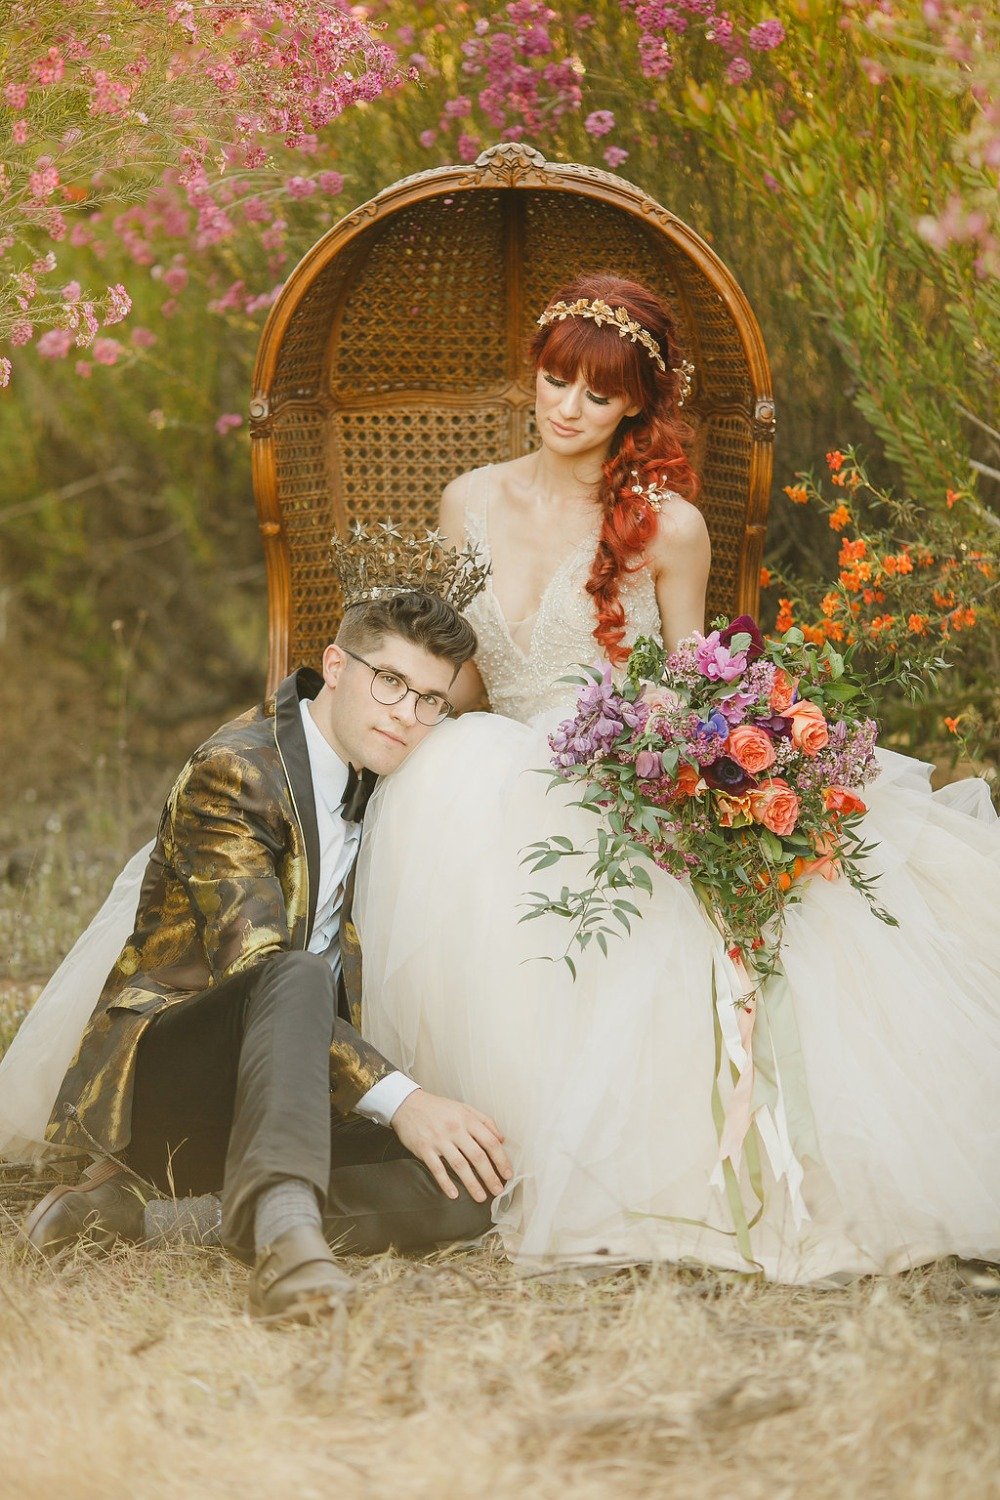 Floral Fairytale Shoot at Heavenly Oaks Flower Farm Royal Bride and Groom